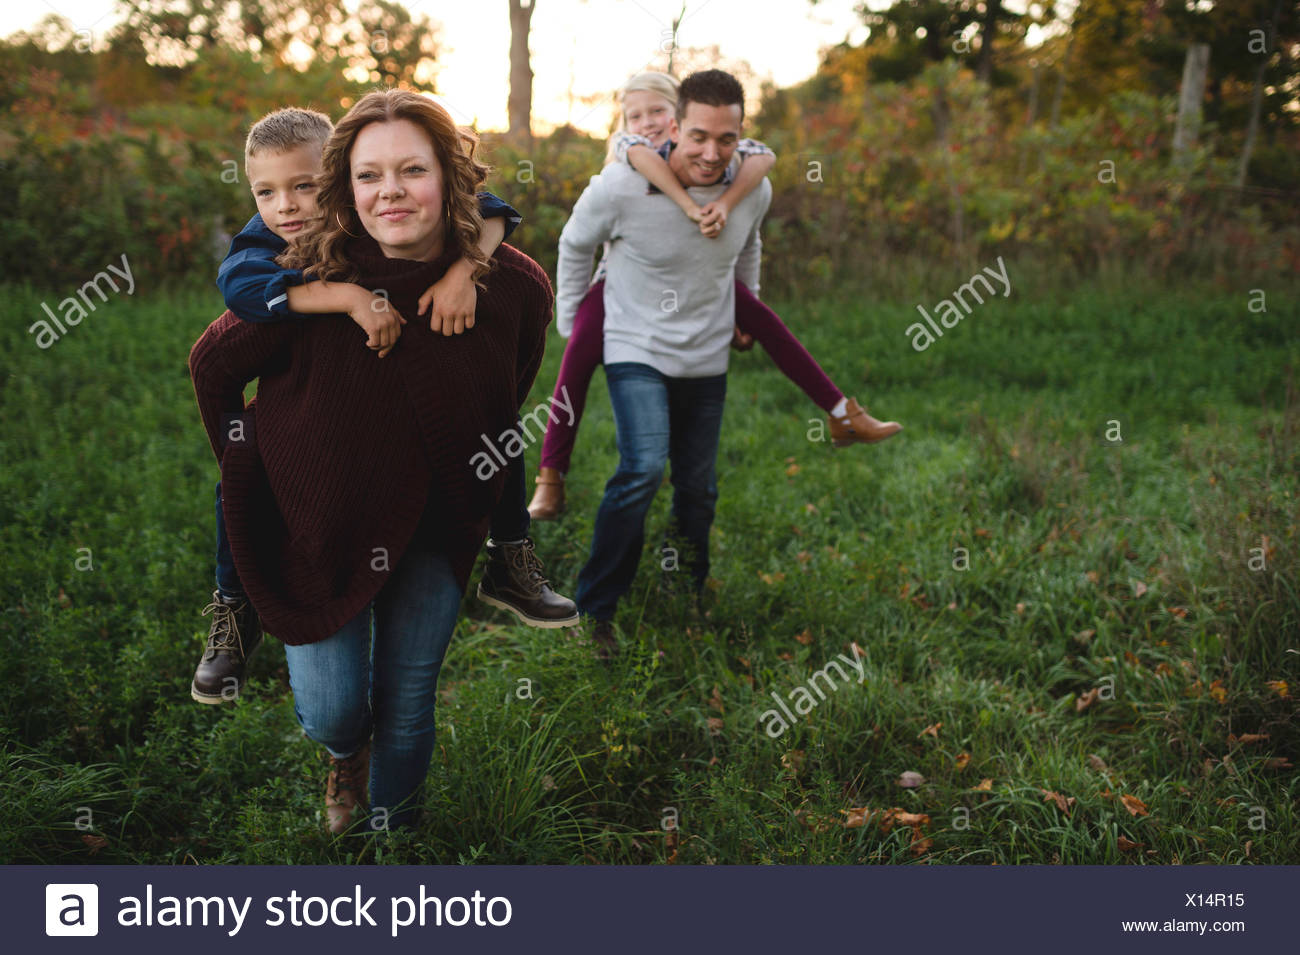 Donner aux enfants les parents piggy back in field Photo Stock